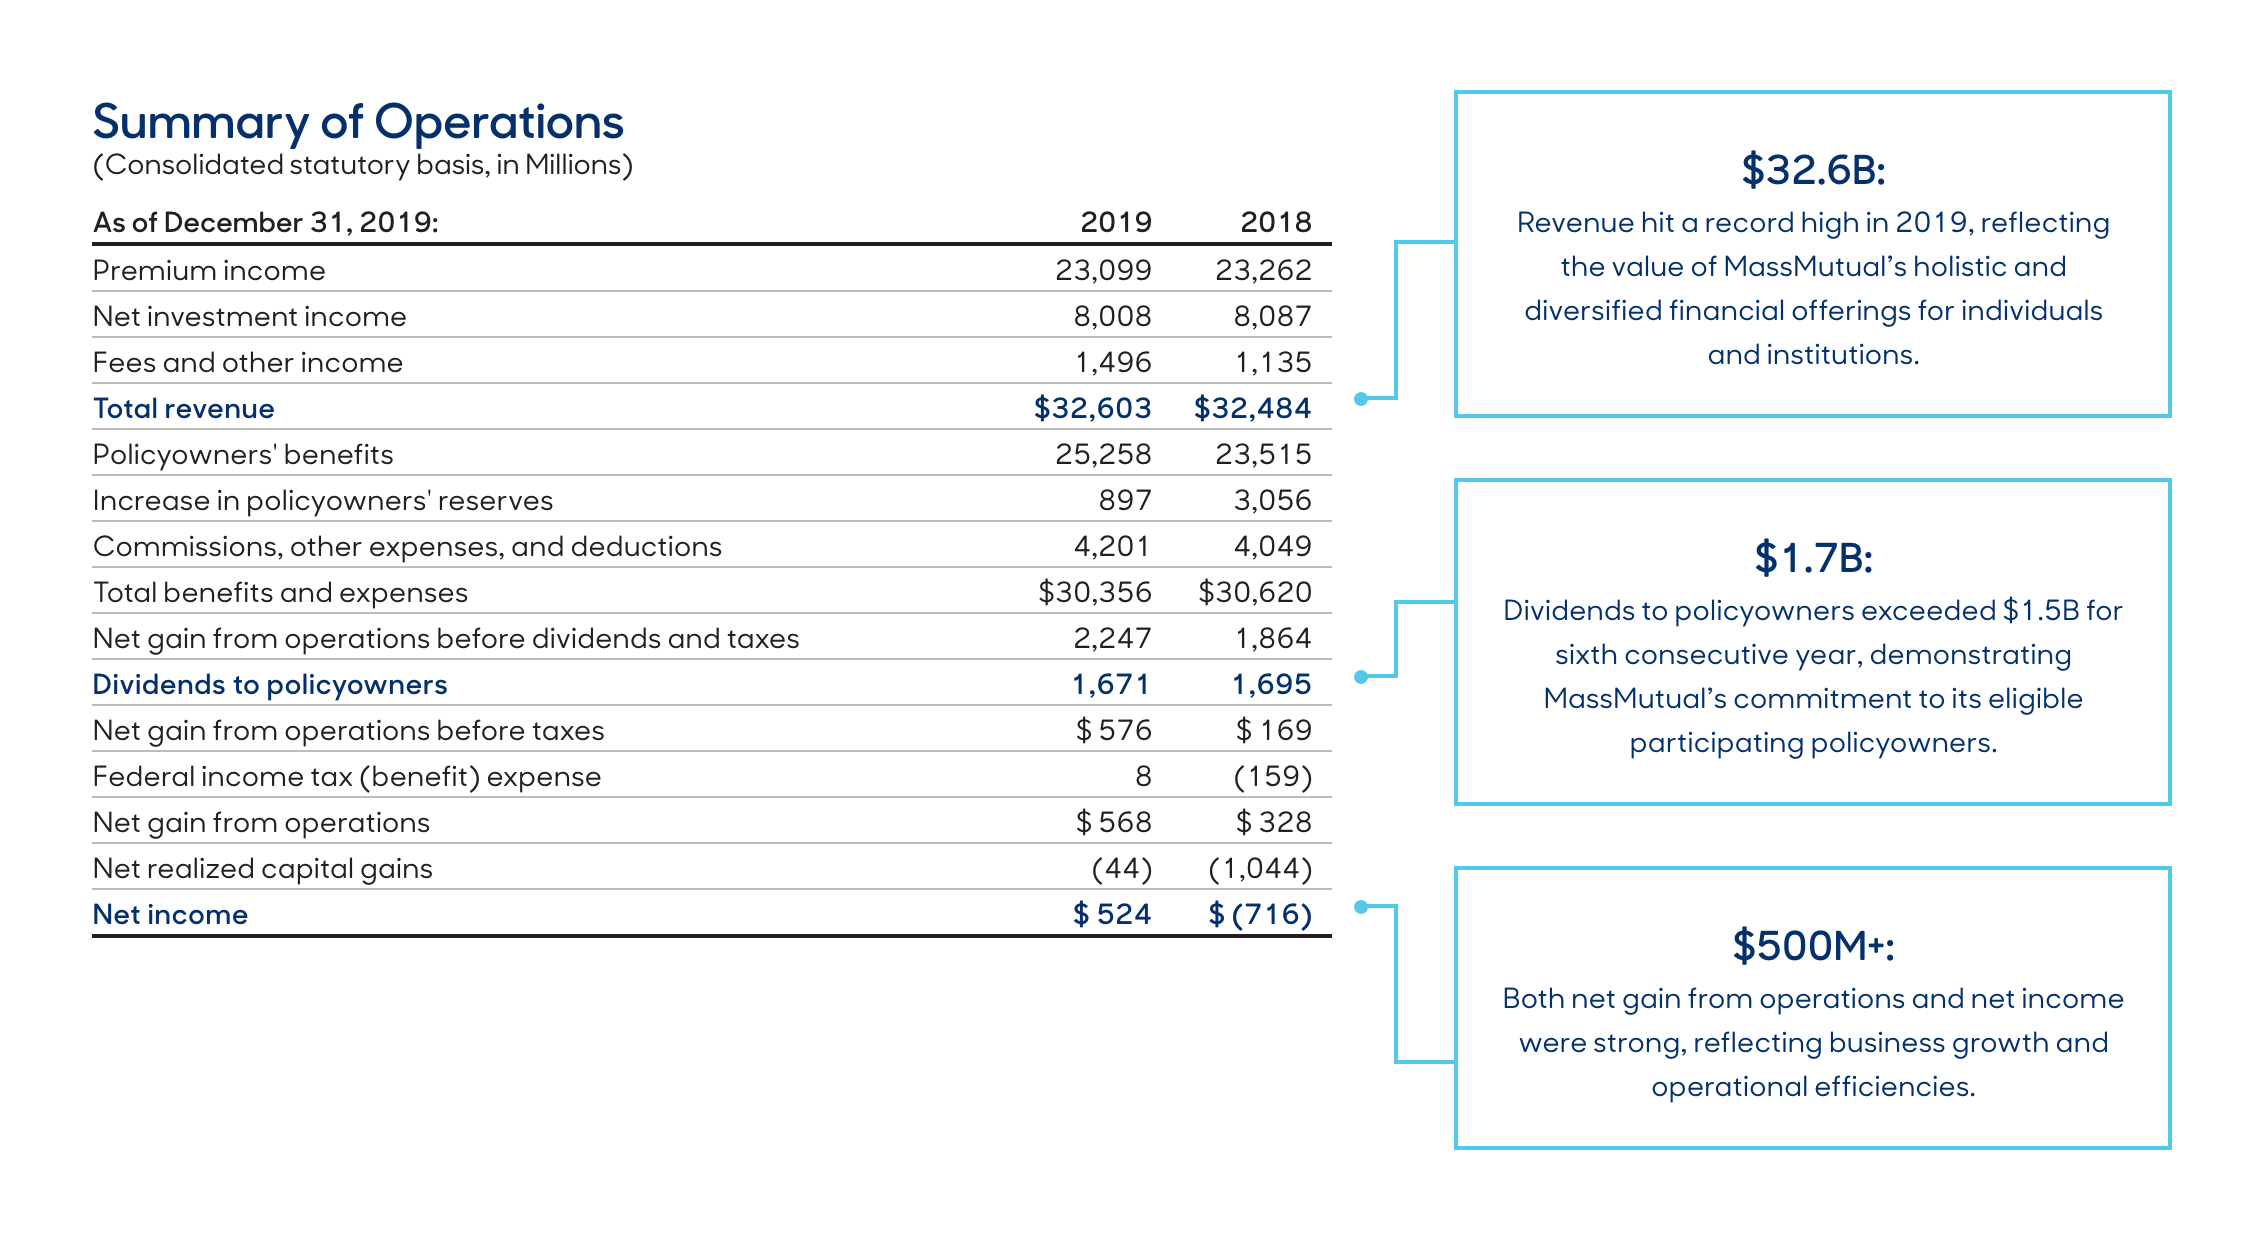 MassMutual Summary of Operations